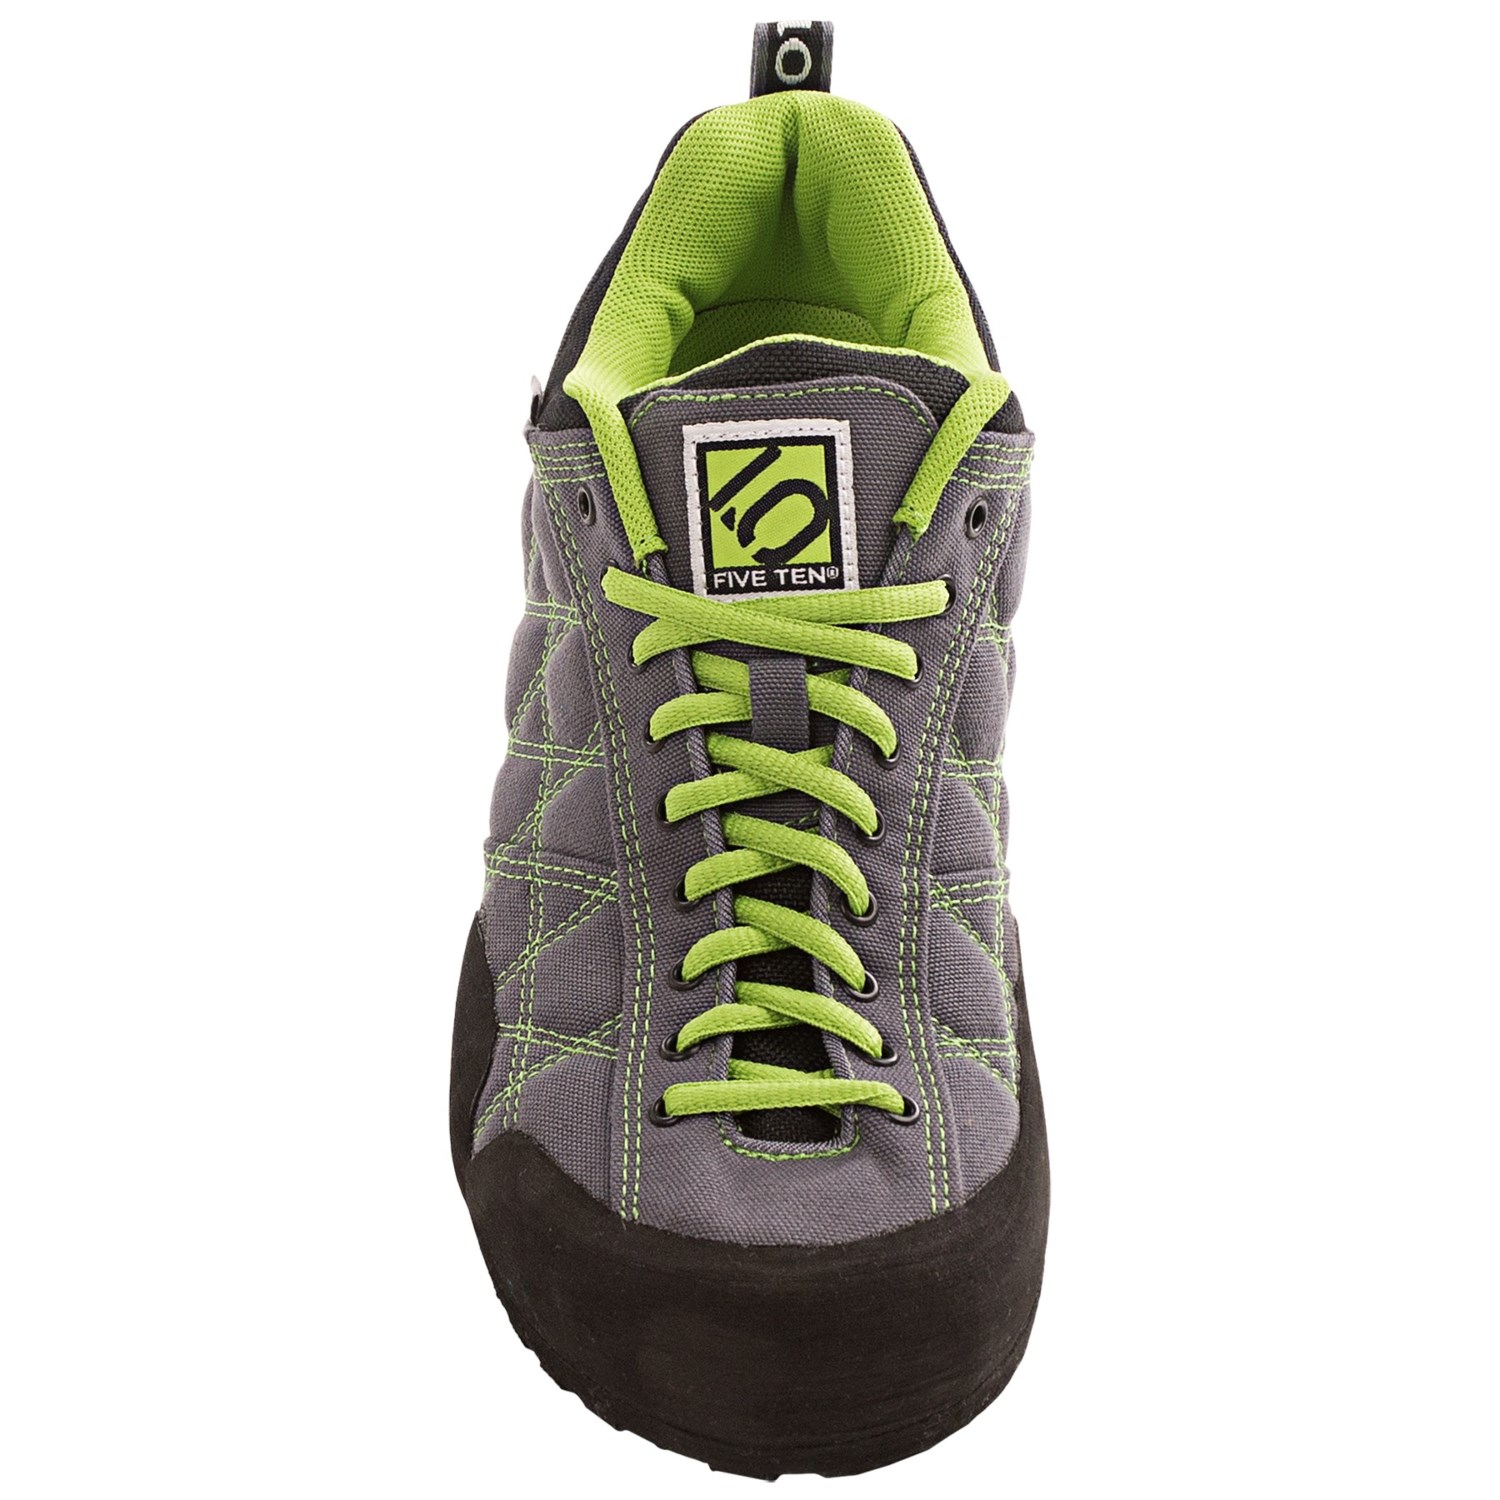 five ten 2013 guide tennie canvas trail shoes for